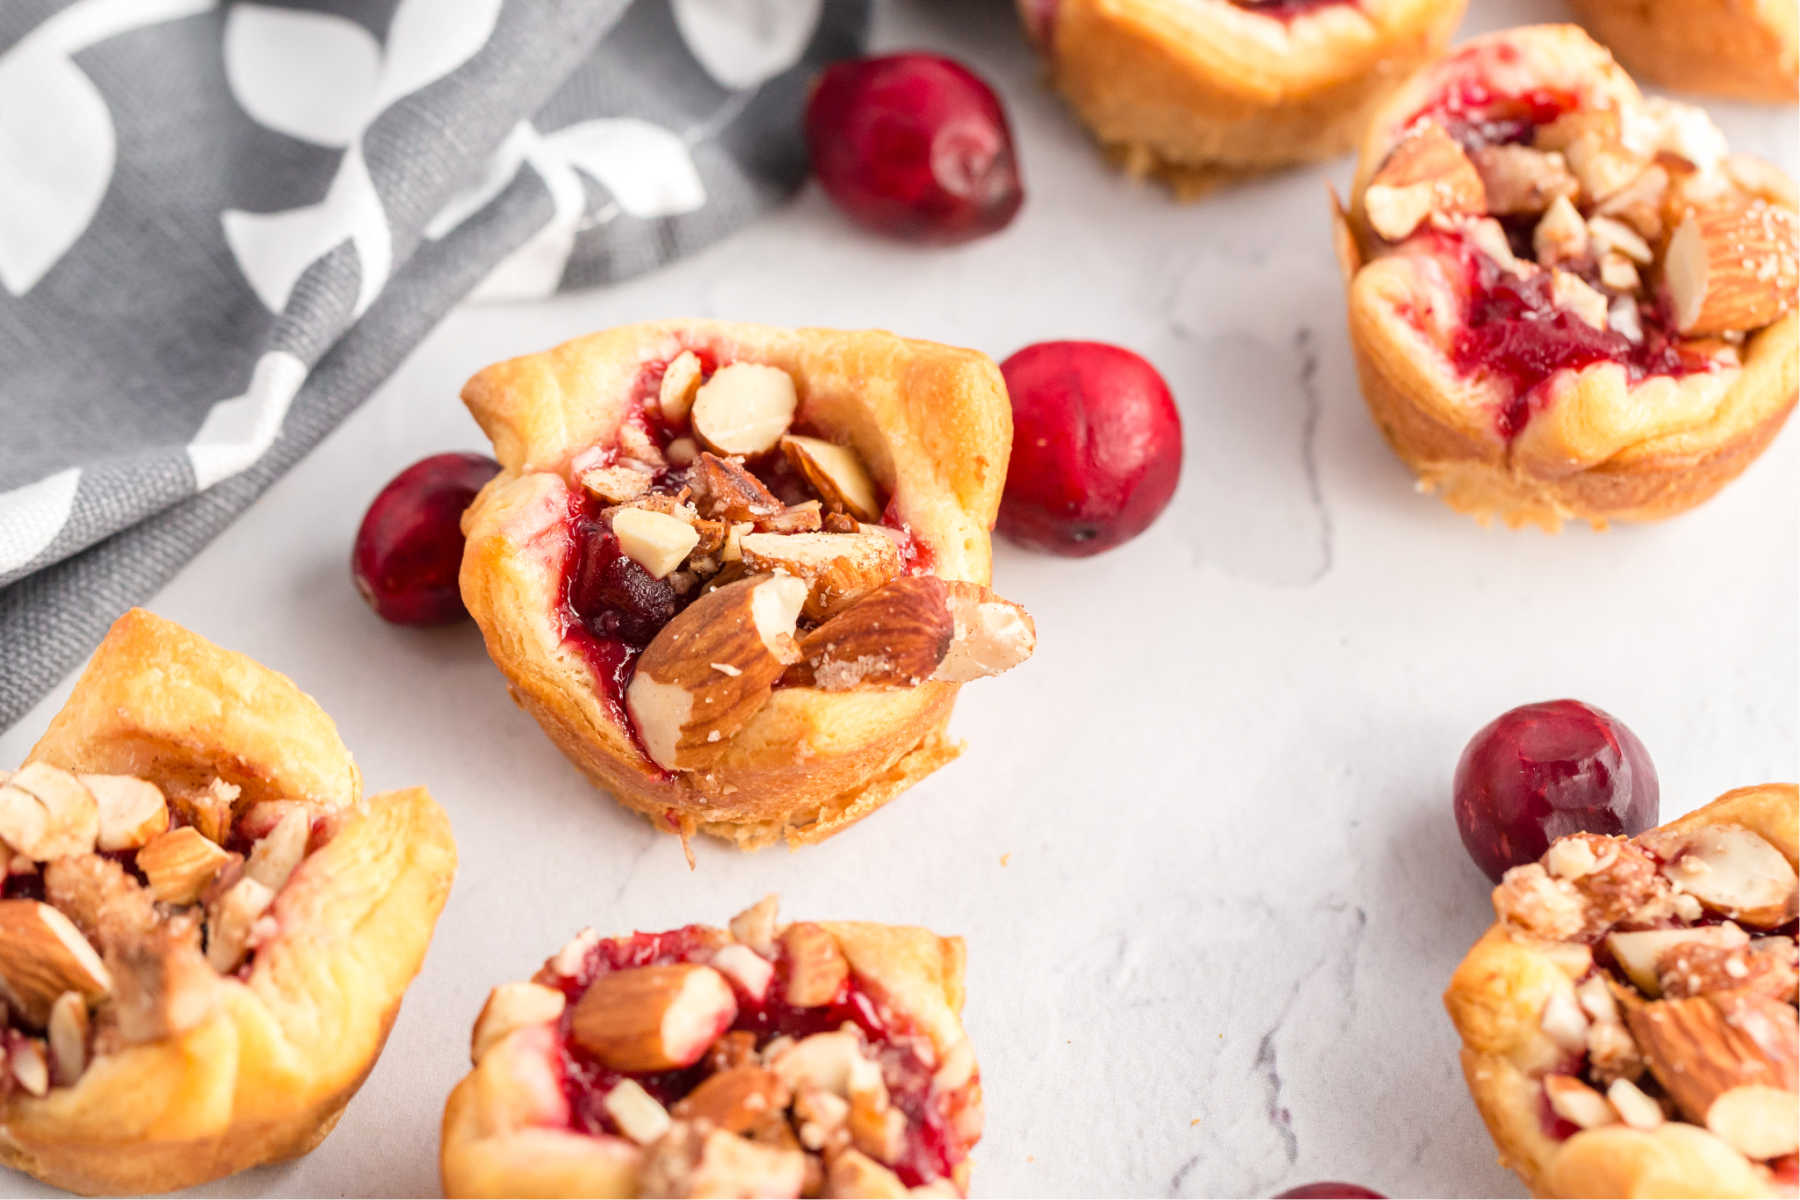 Cranberry goat cheese tarts on a table with fresh cranberries scattered.